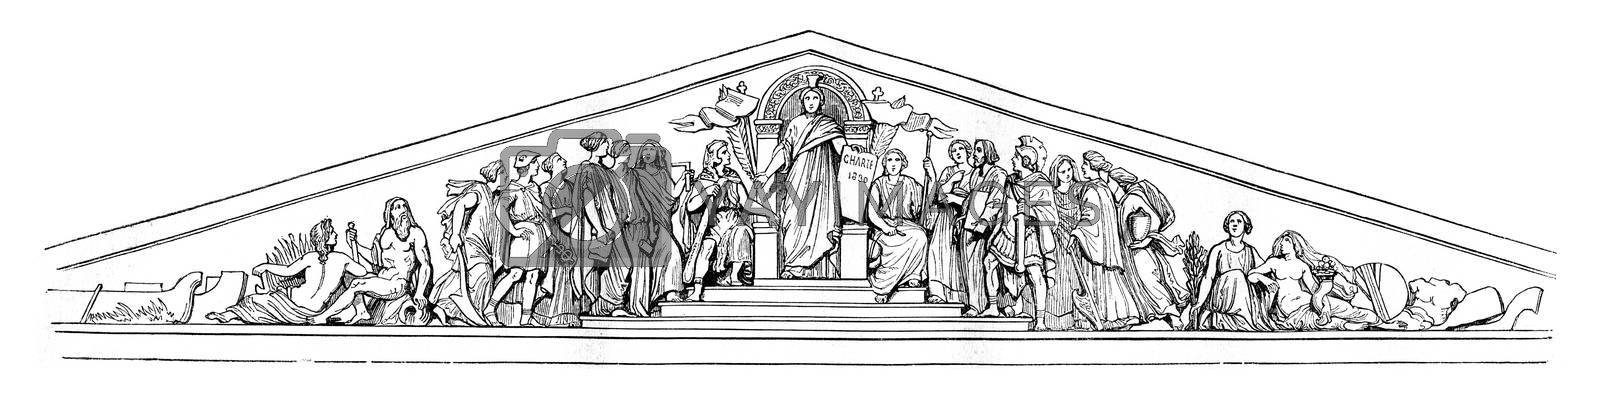 Pediment of the Chamber of Deputies, vintage engraved illustration. Magasin Pittoresque 1842.